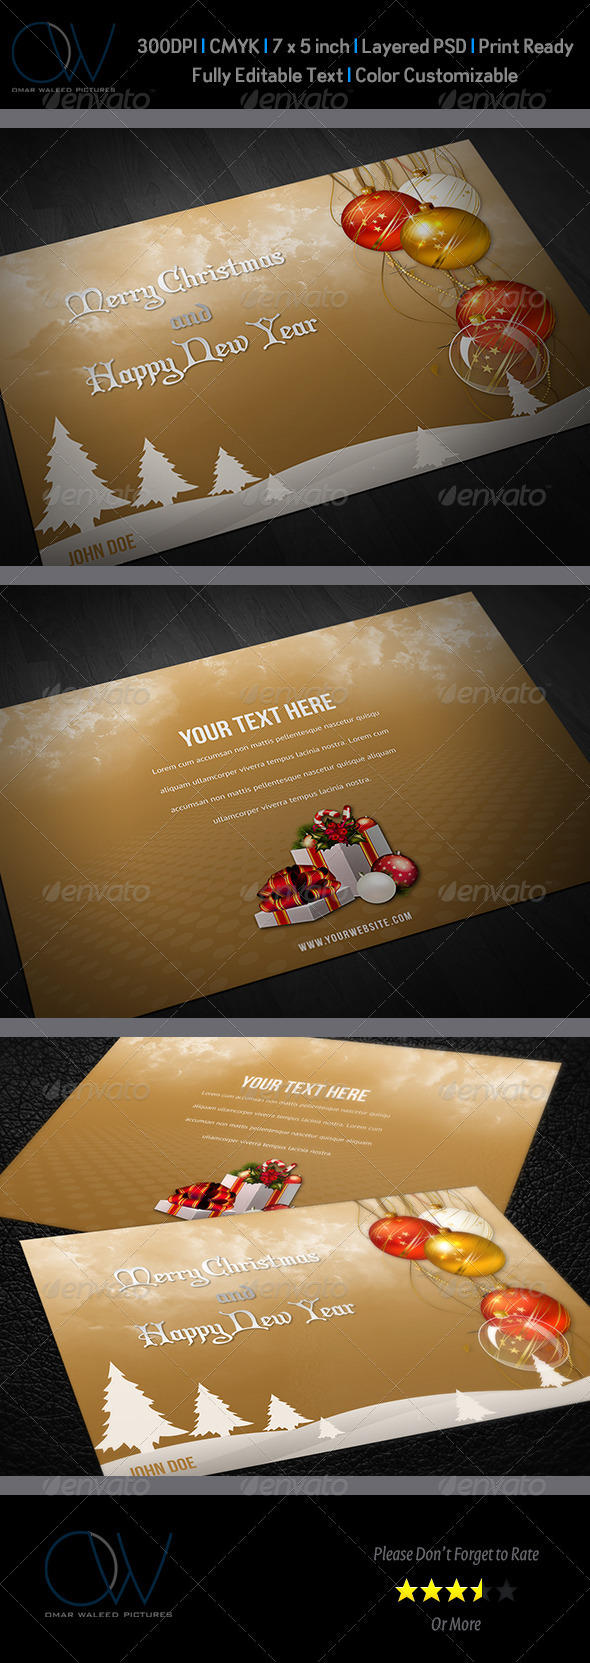 Christmas and New Year Greeting Card Vol.2